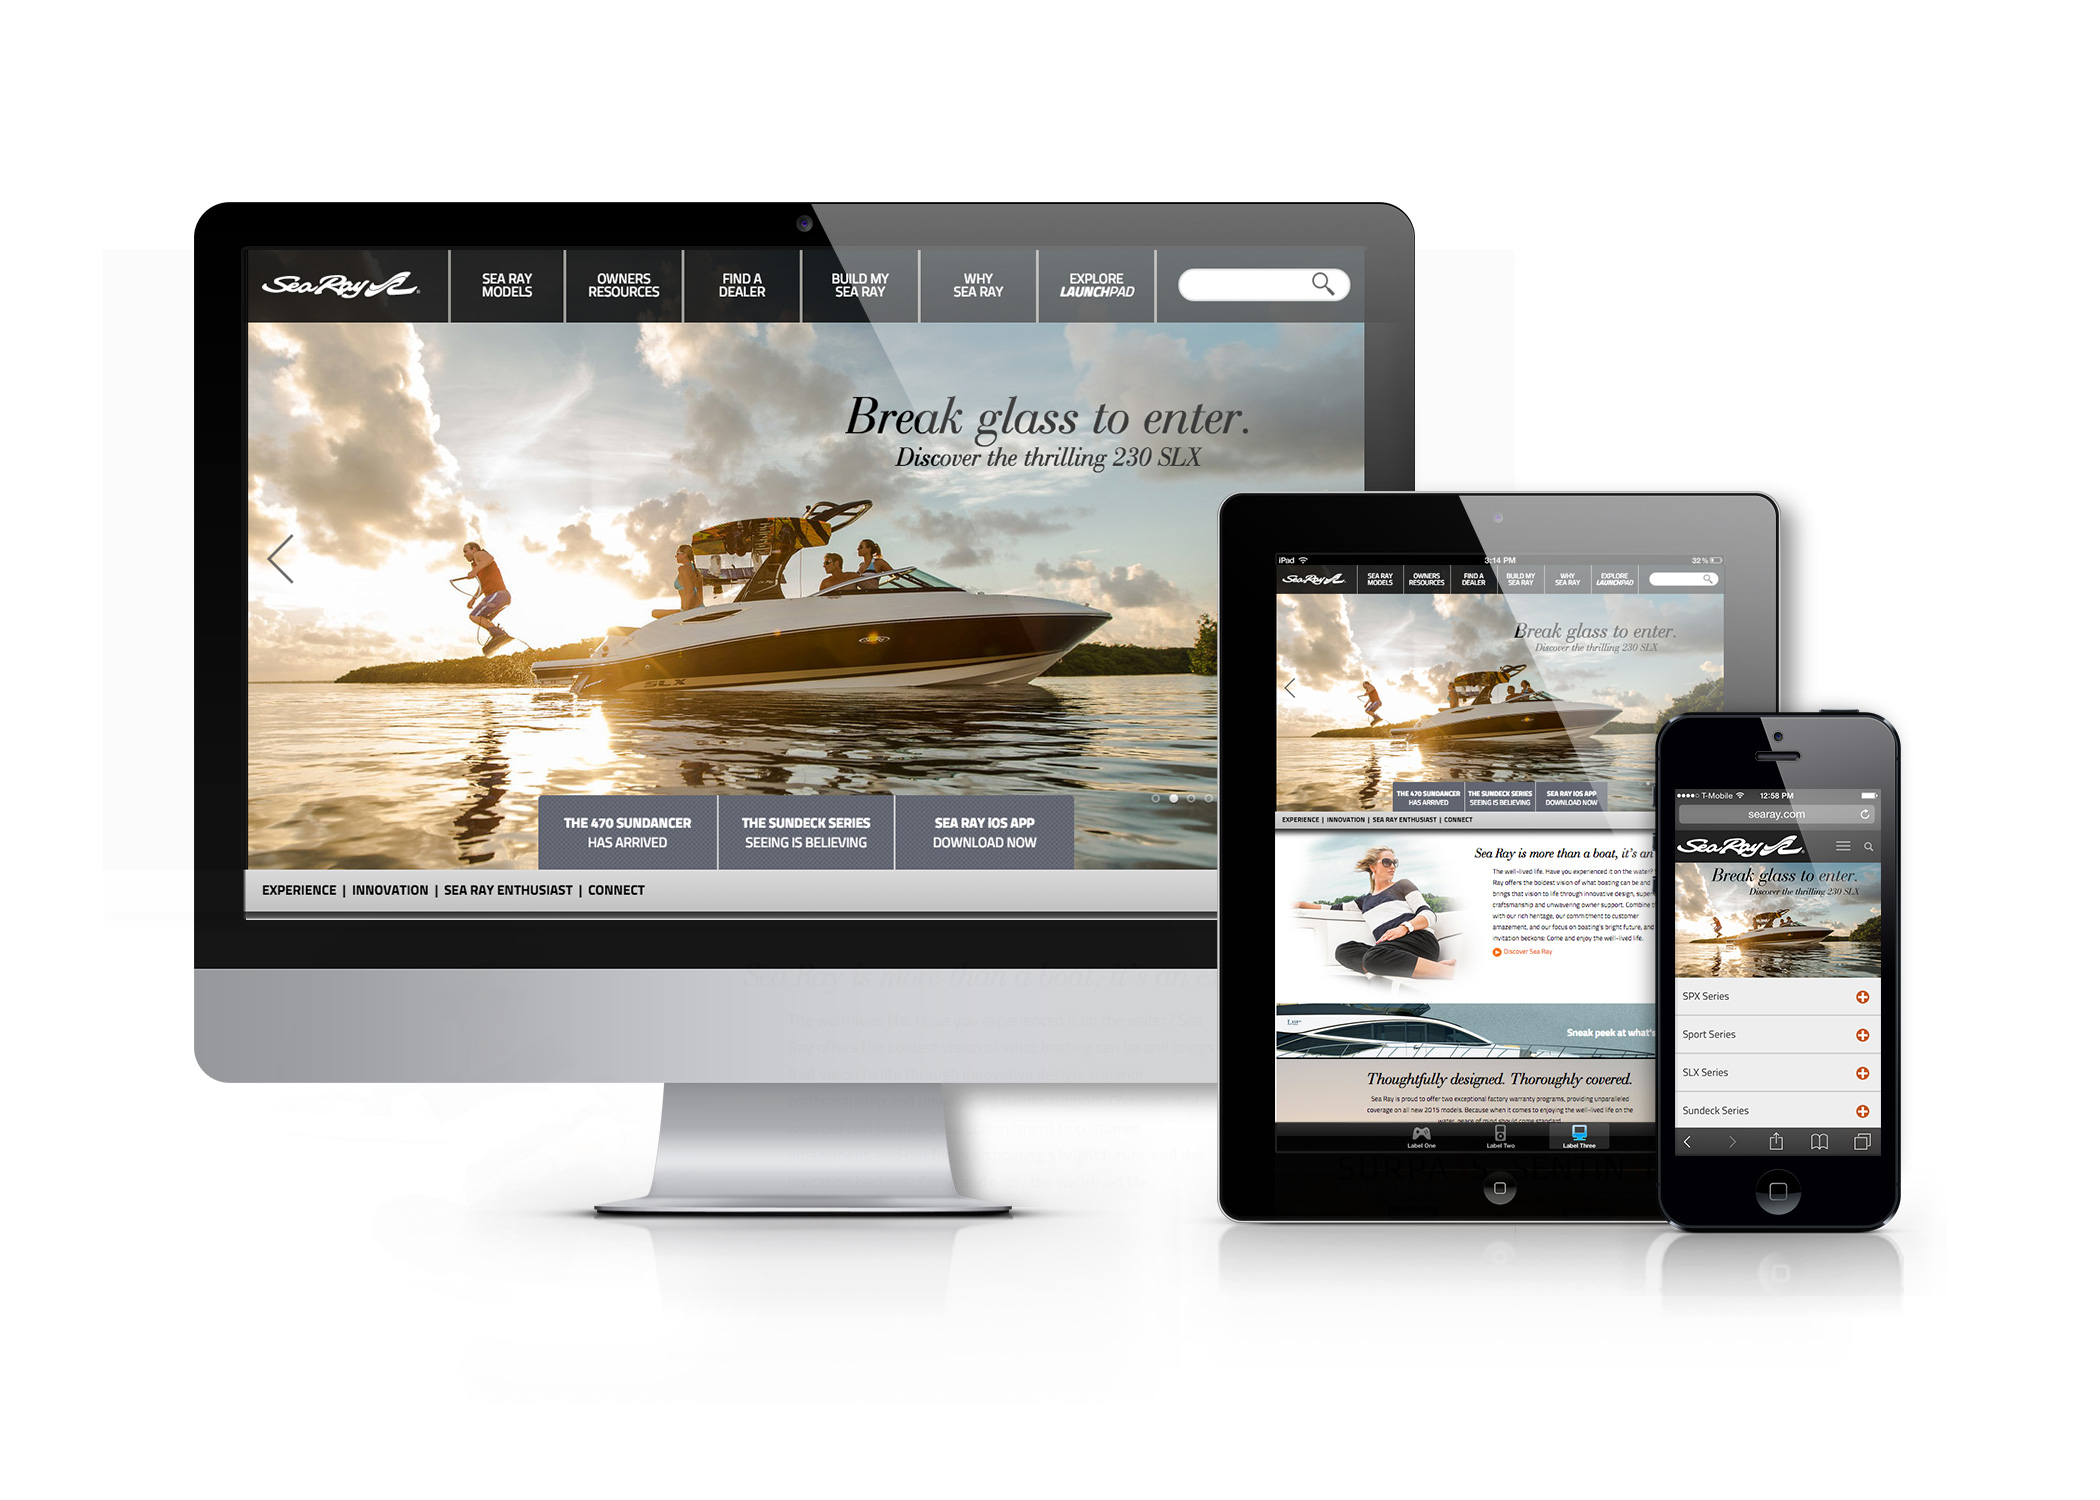 Sea Ray website displayed on a desktop computer, tablet, and mobile phone